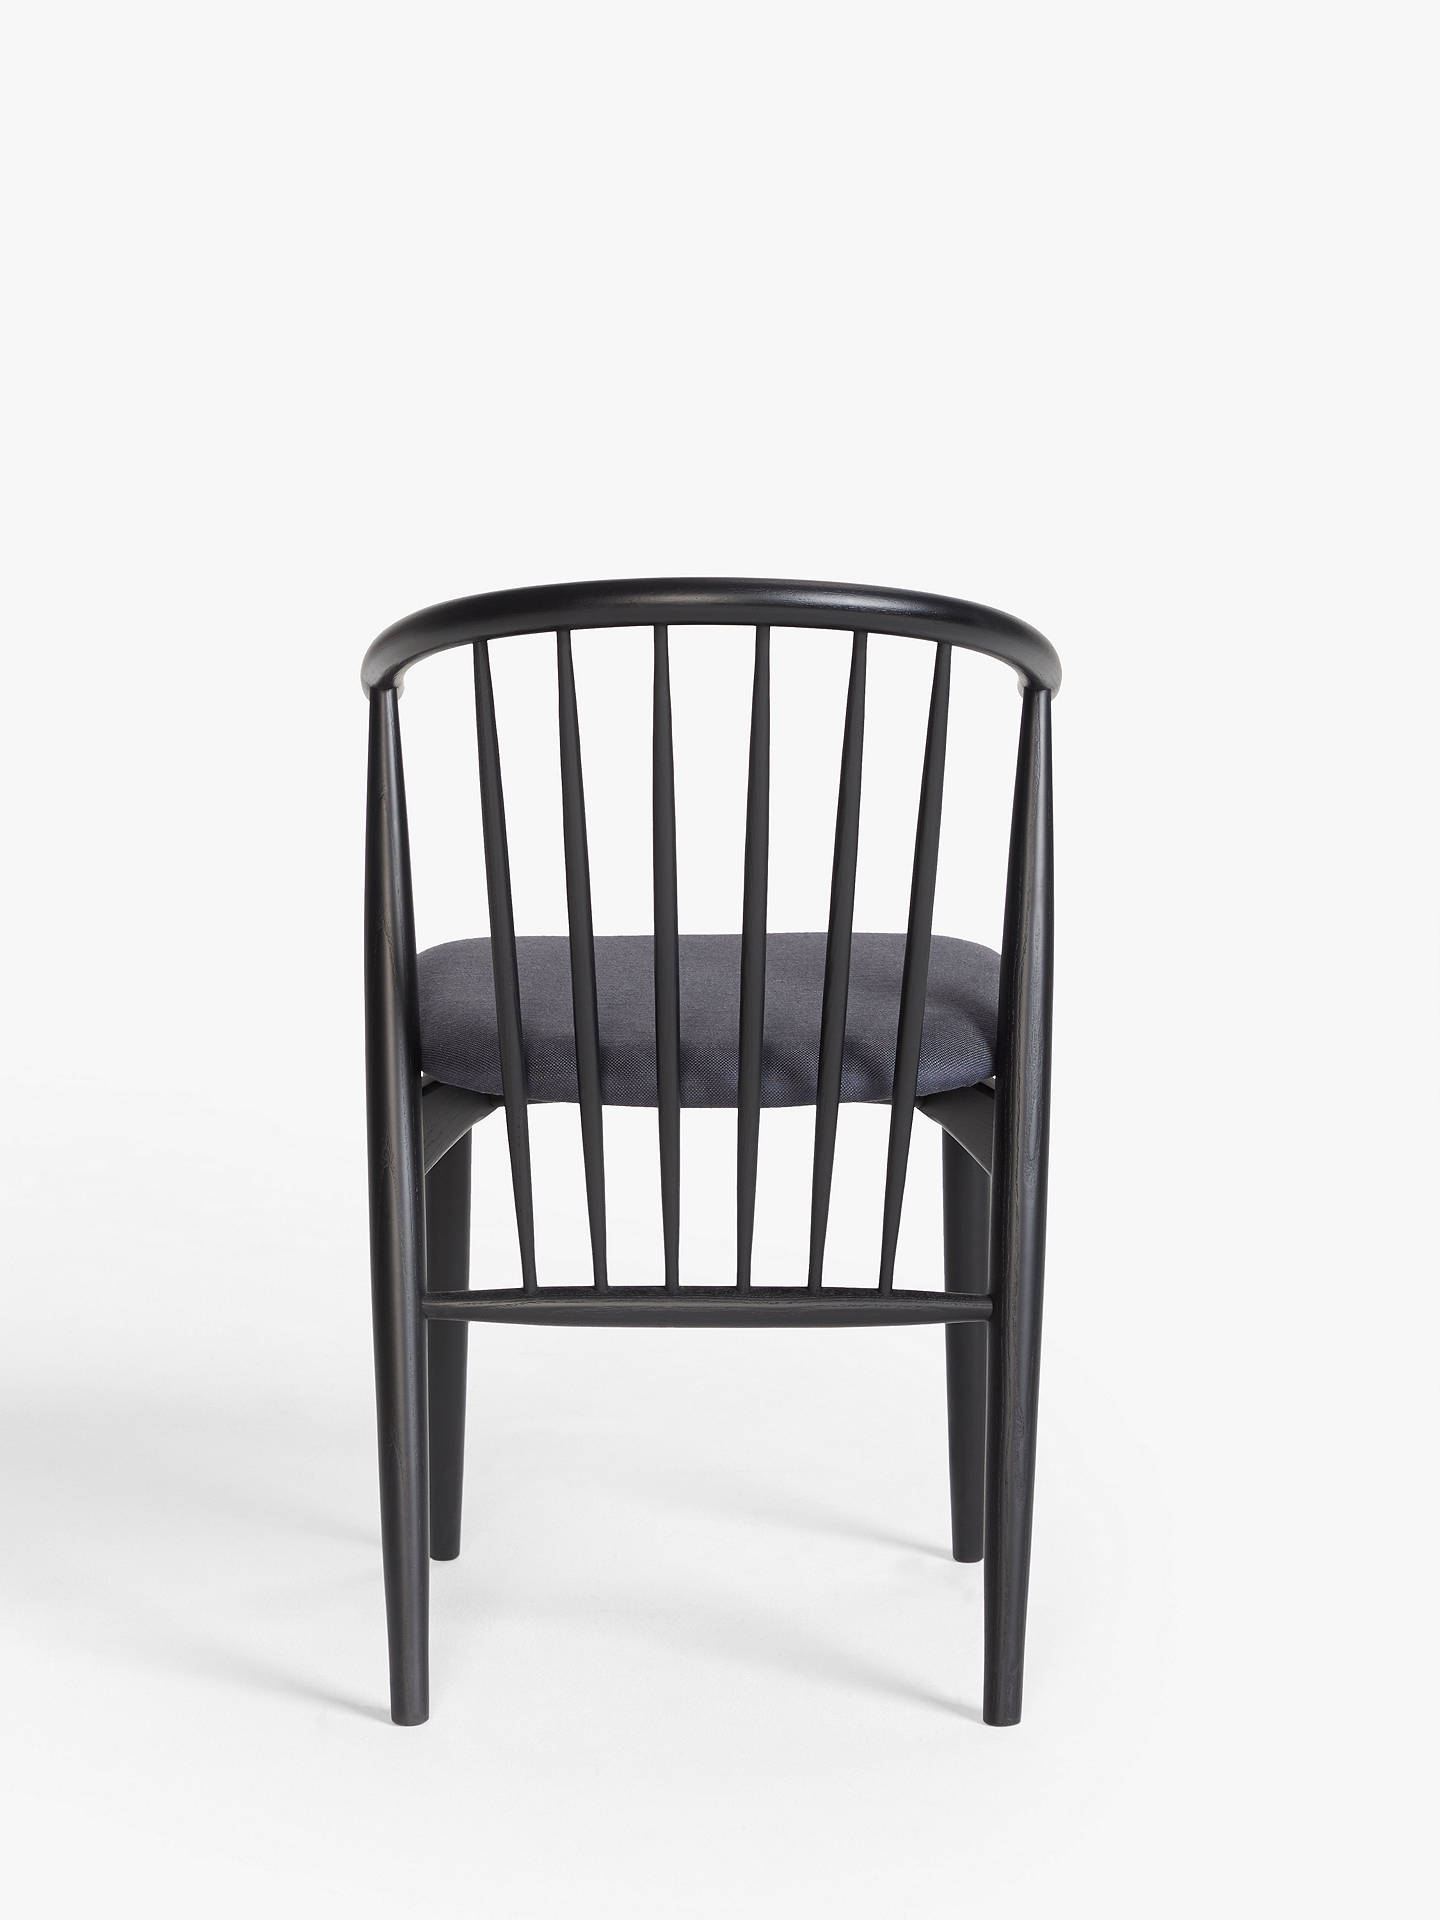 Admirable Croft Collection Kinross Spindle Dining Chair Black Evergreenethics Interior Chair Design Evergreenethicsorg